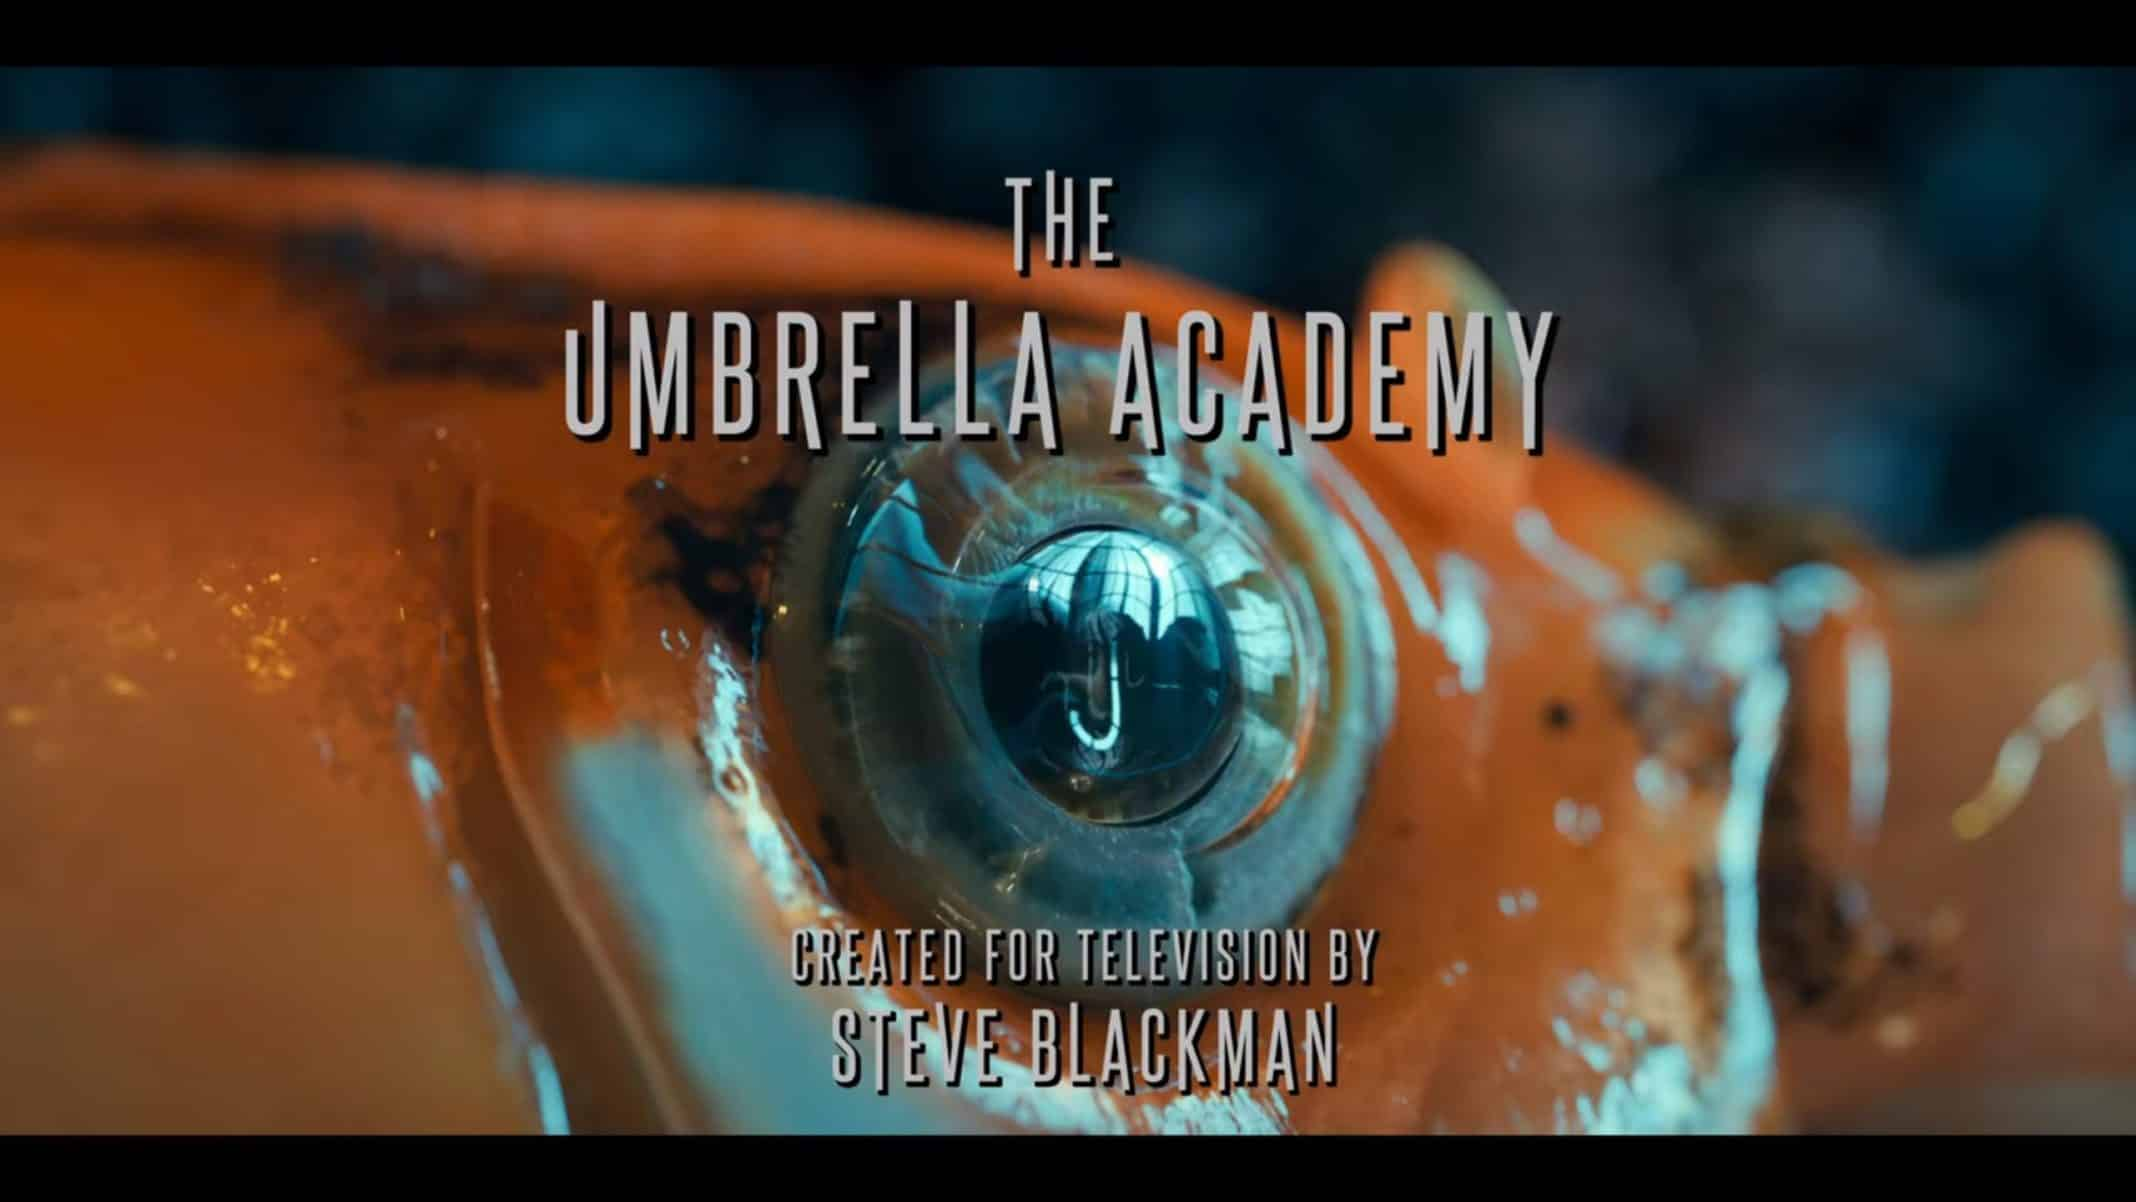 AJ's eye featuring the Umbrella Academy's title card.